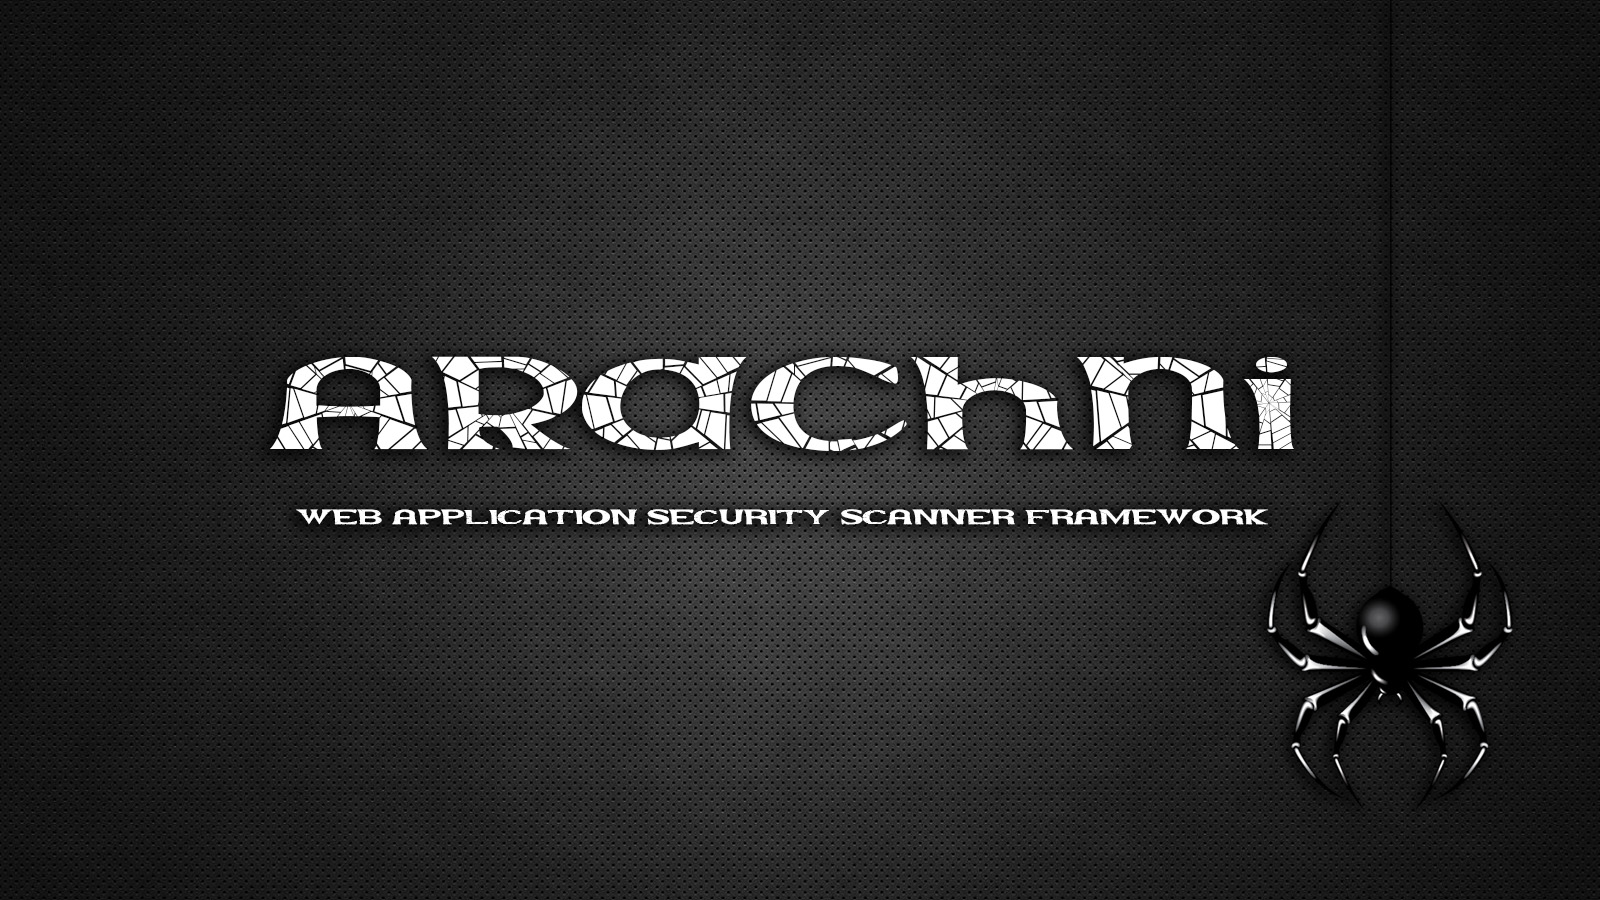 Arachni - Web Application Security Scanner Framework